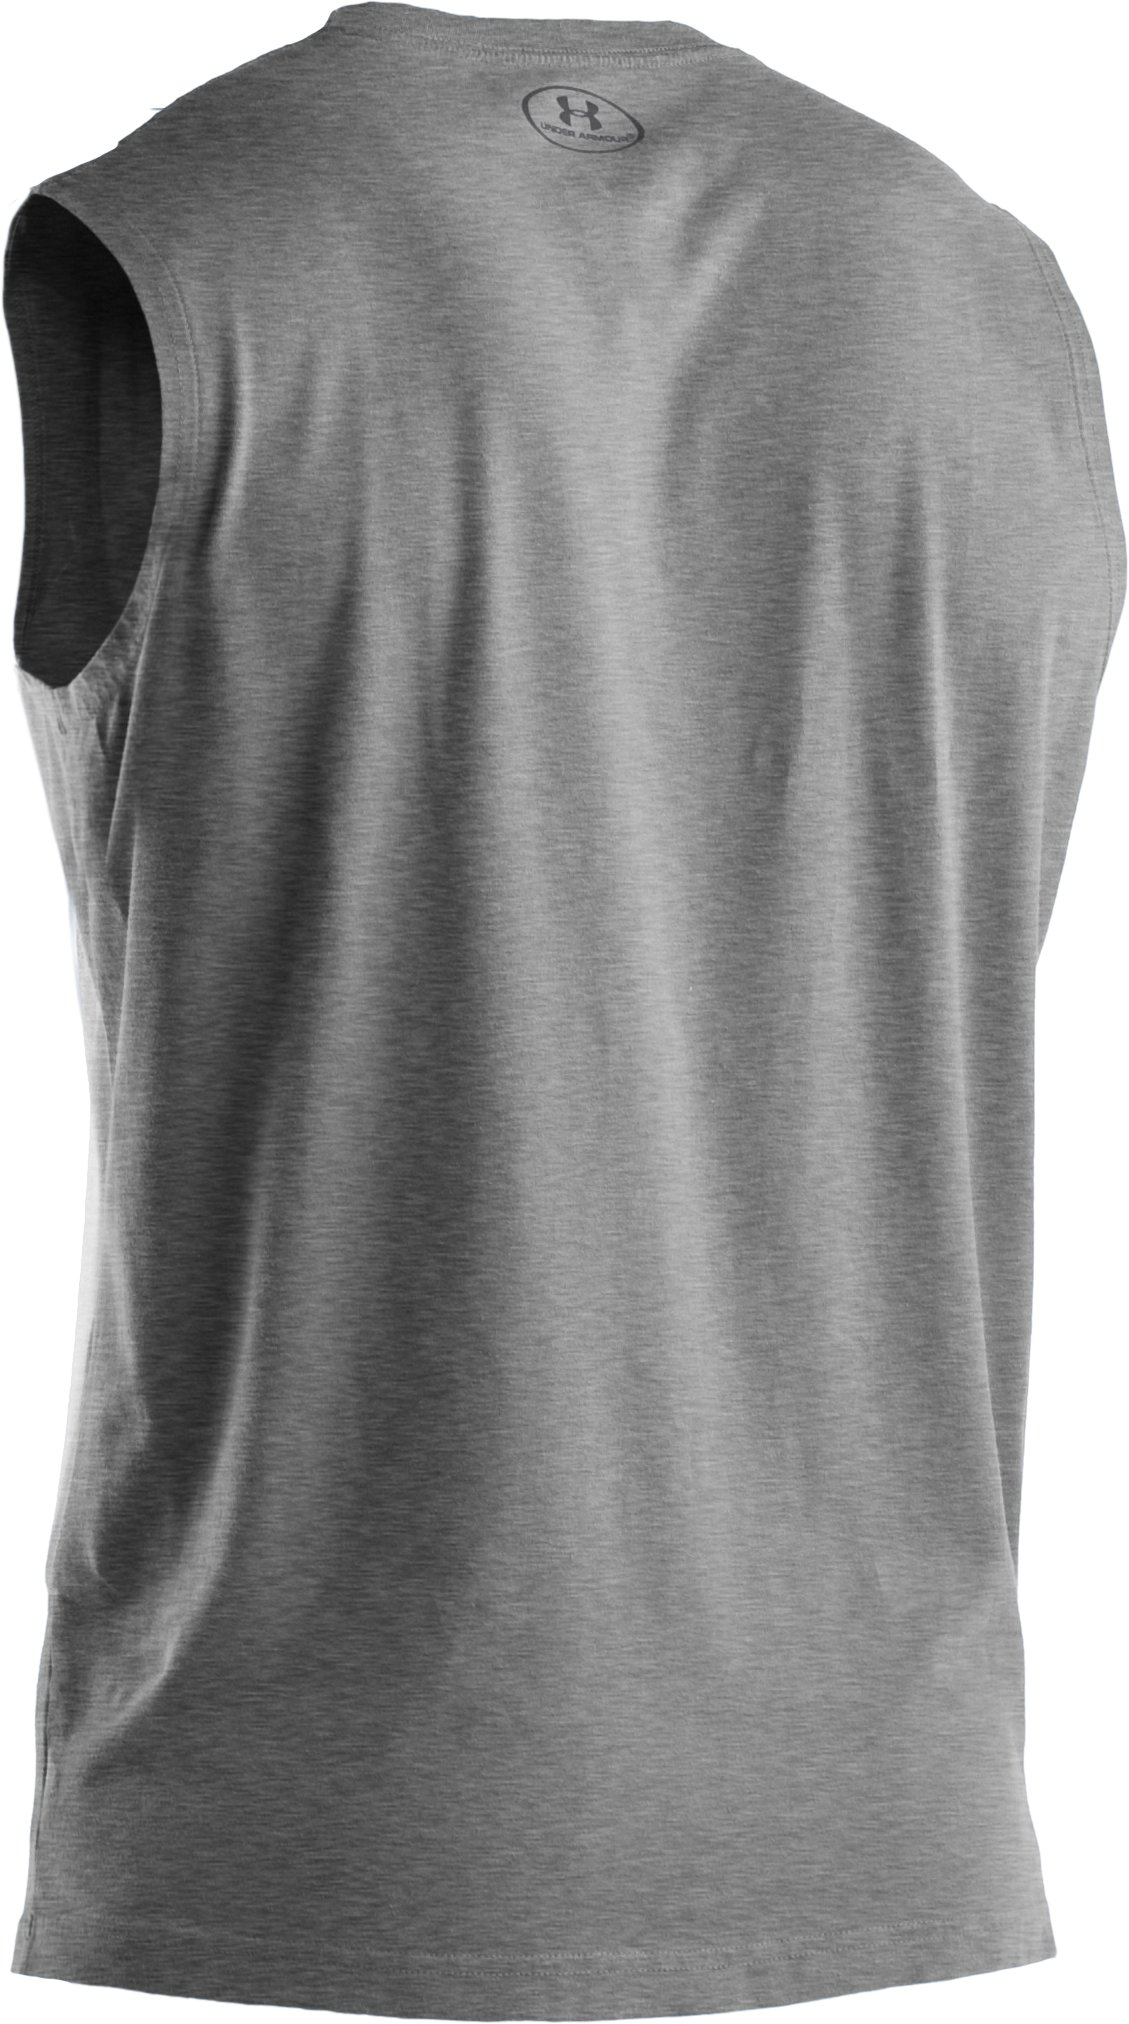 Men's Charged Cotton® Sleeveless T-shirt, True Gray Heather